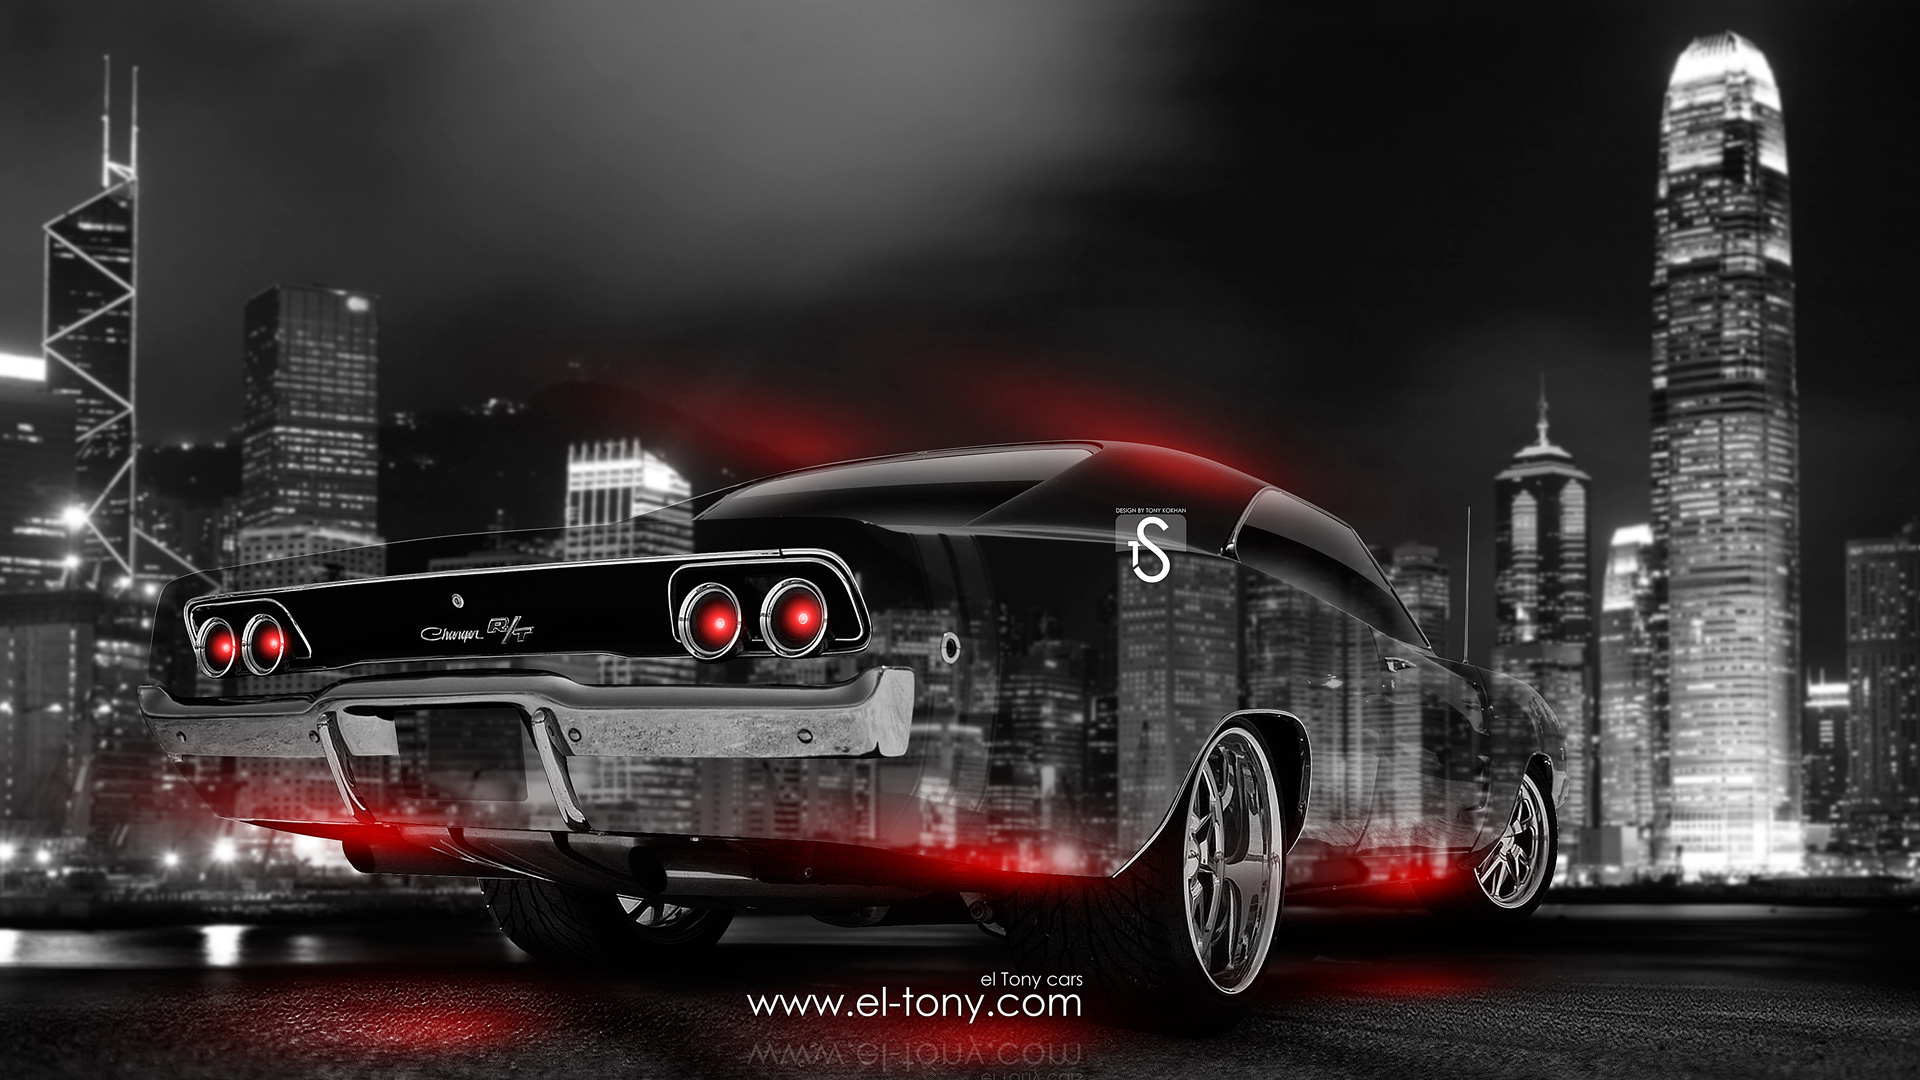 Dodge Charger Rt Muscle Crystal City Car 2014 El Tony